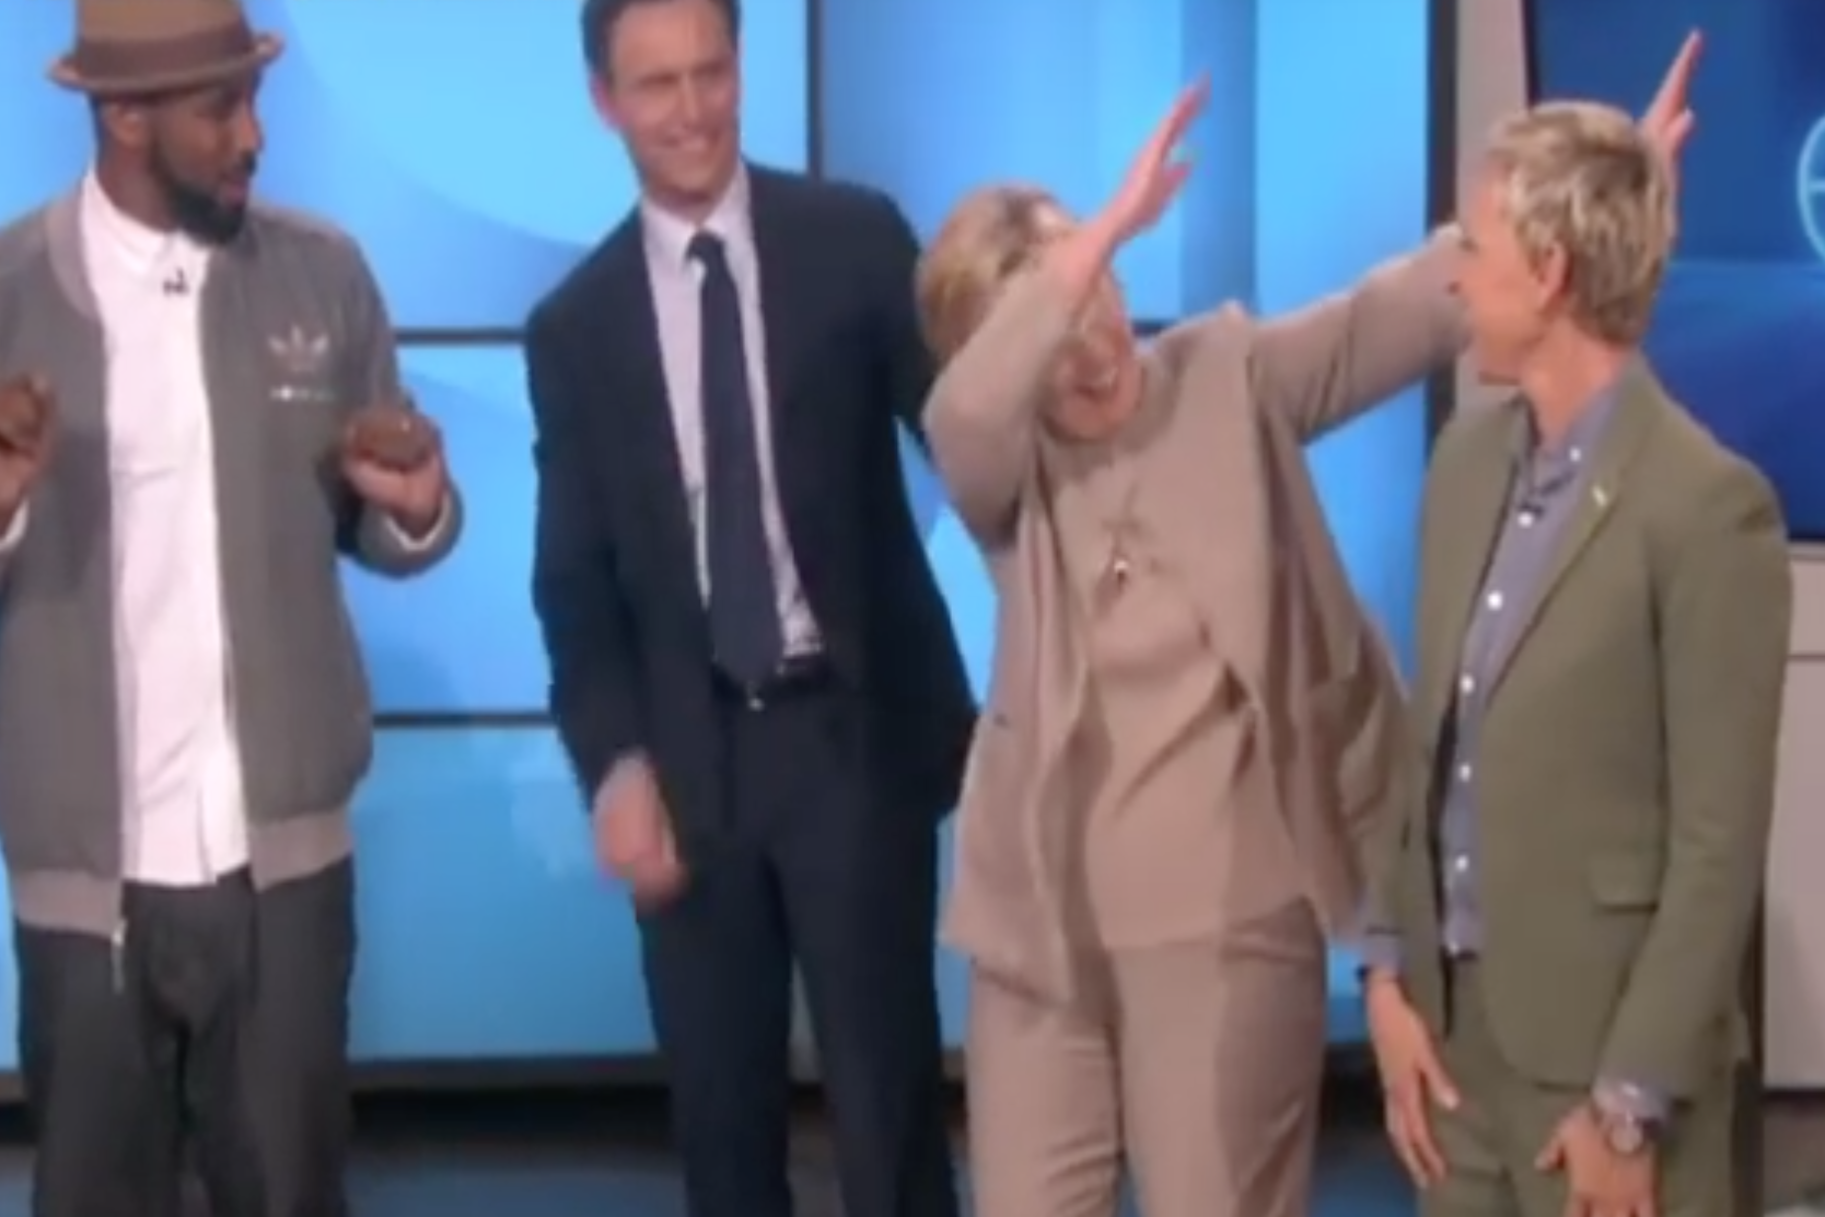 Hillary Clinton Does The Dab ... Yikes. | Very Real